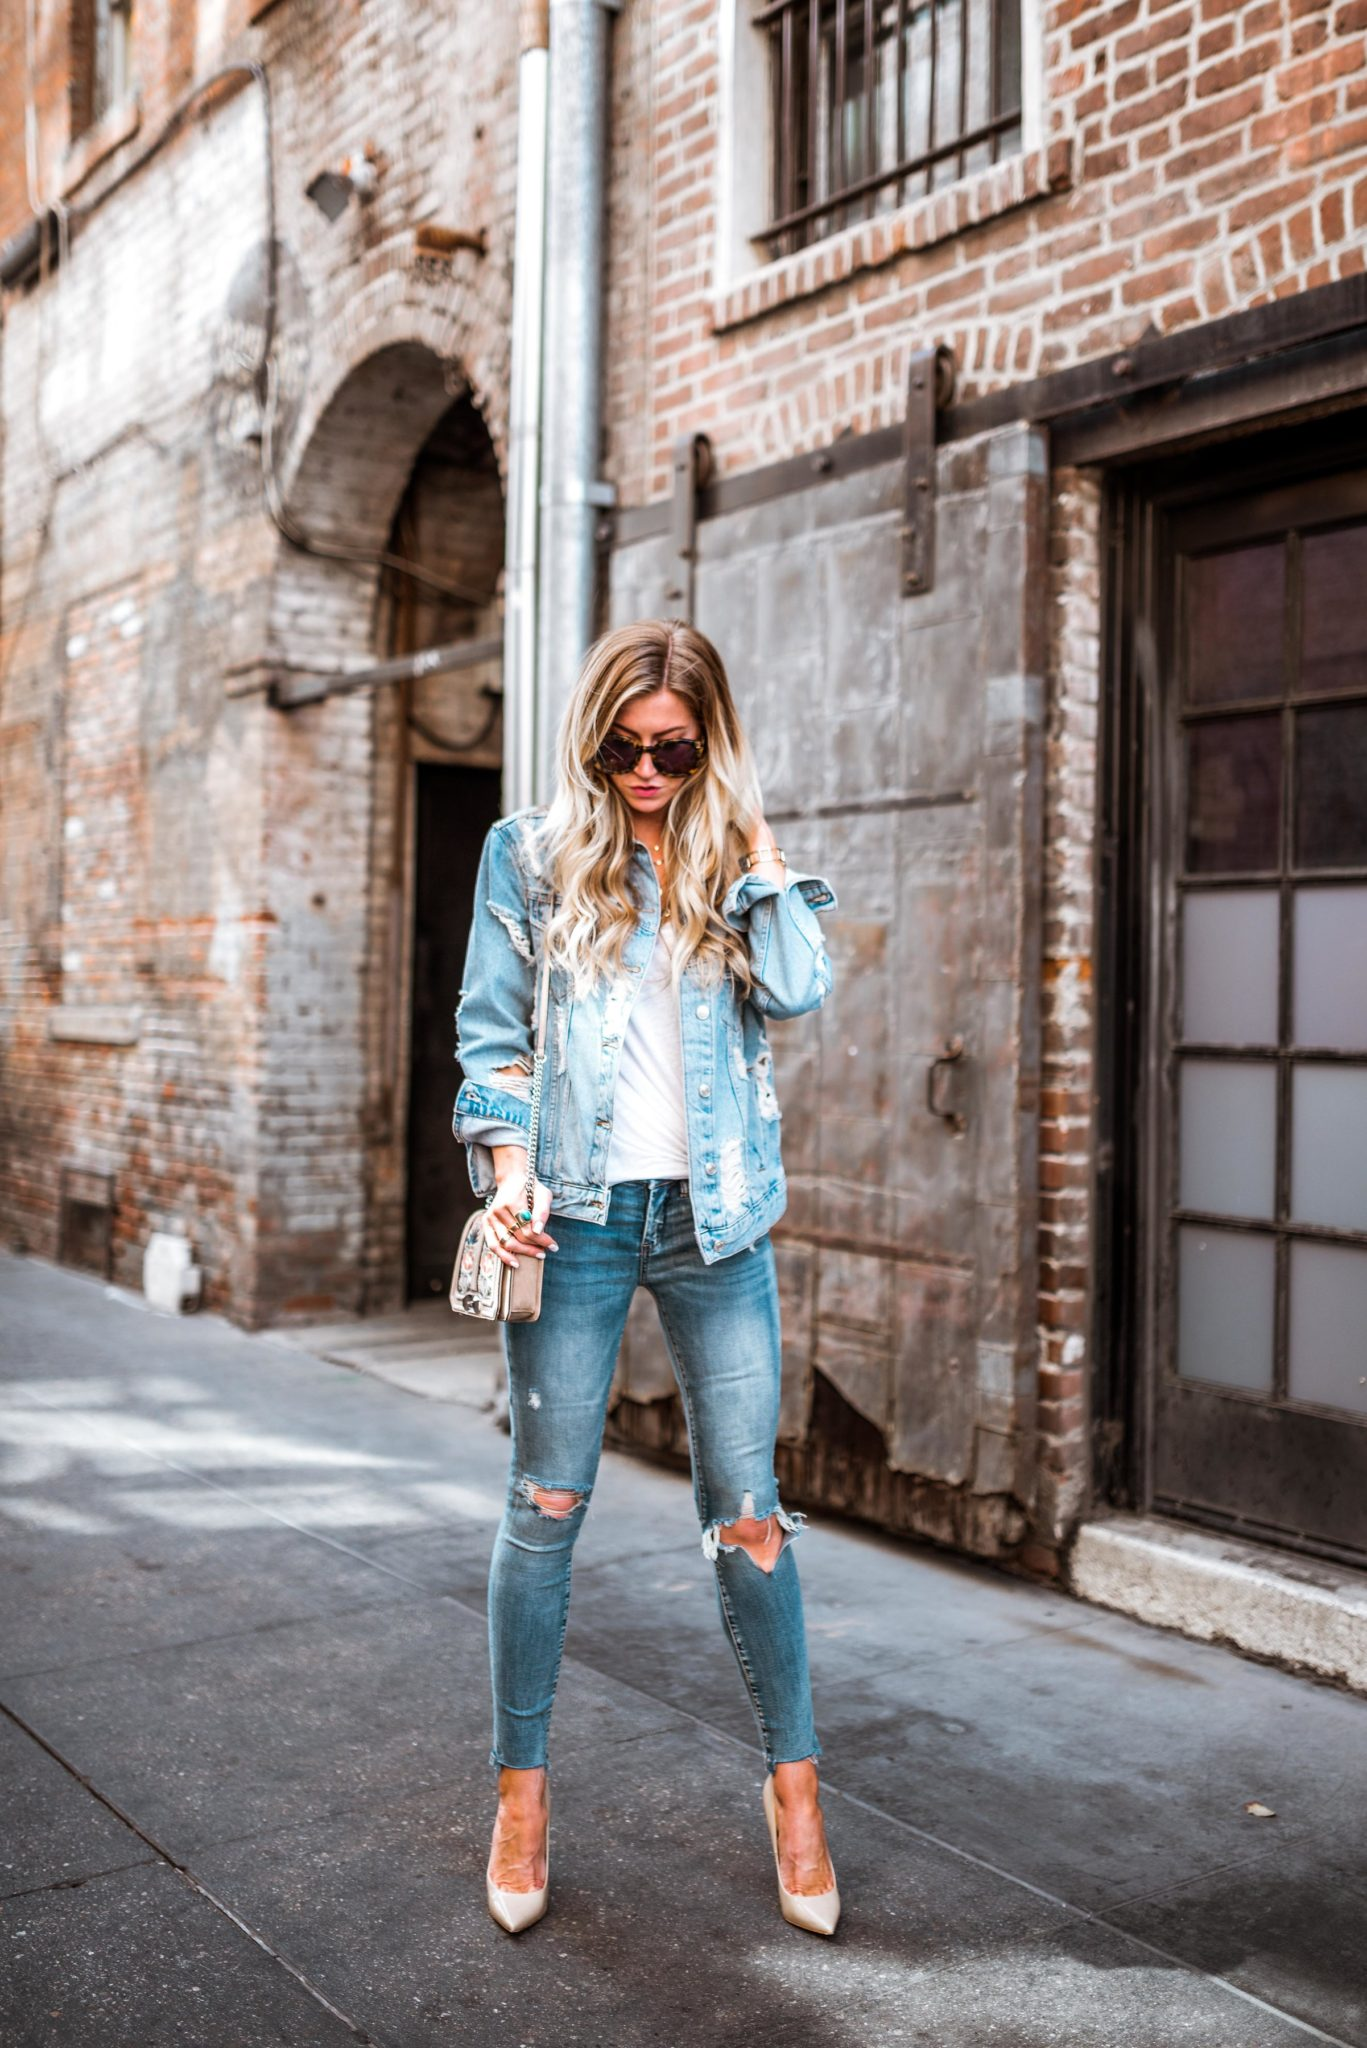 The Distressed Trend